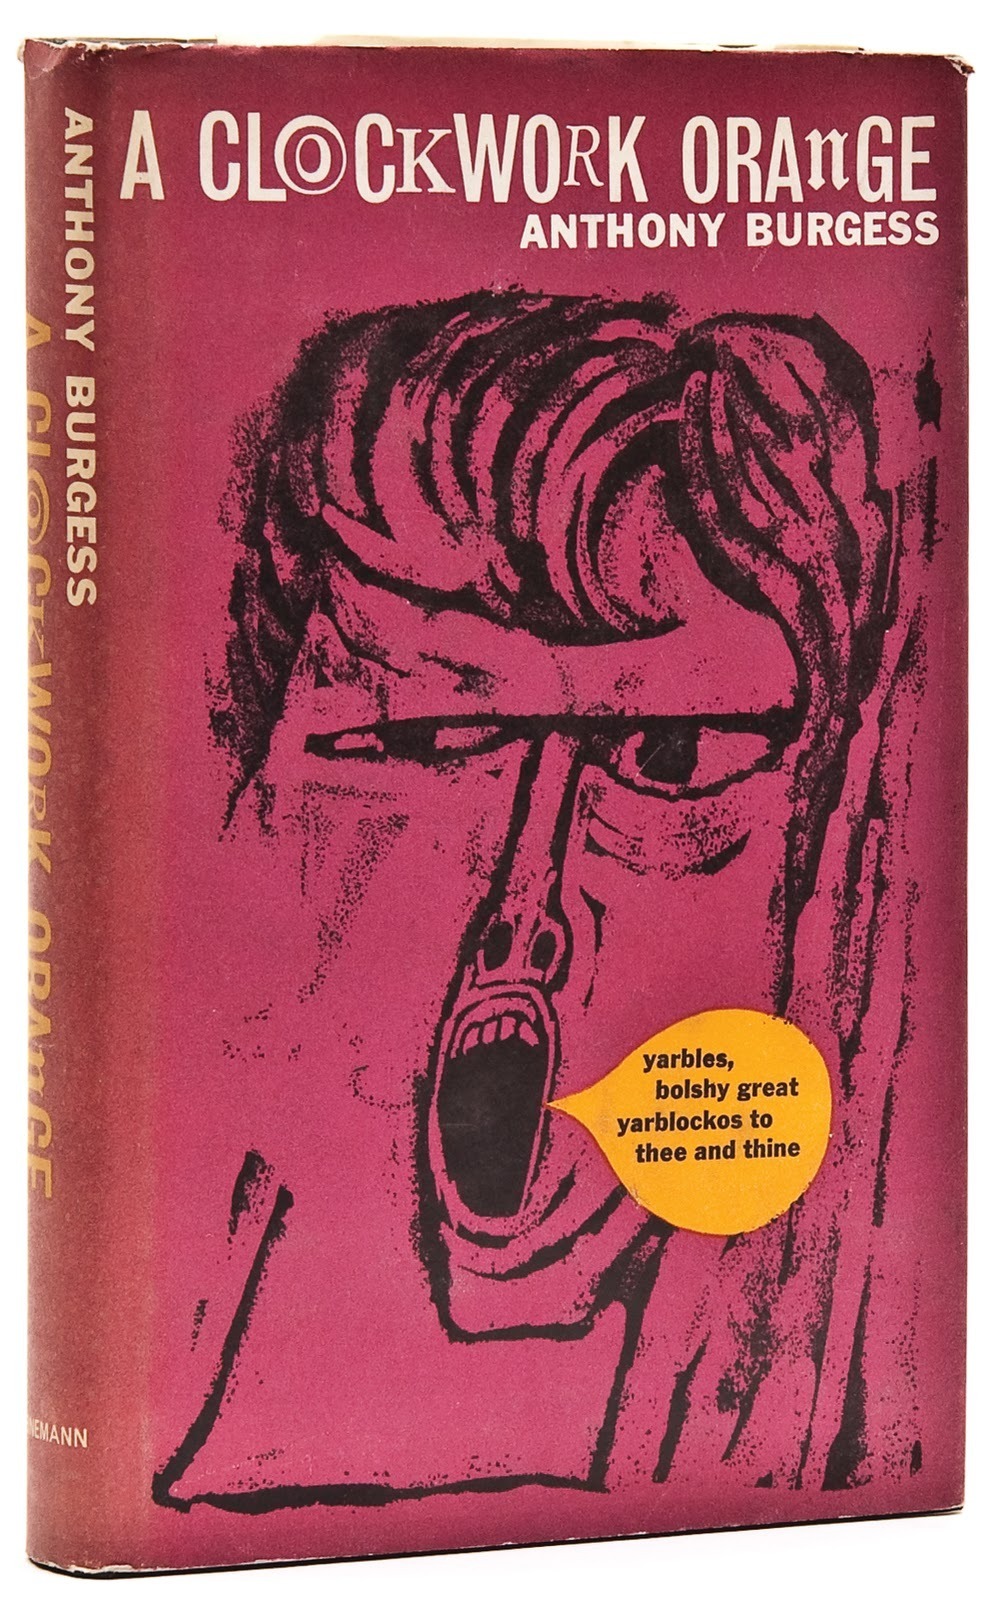 Anthony Burgess first book